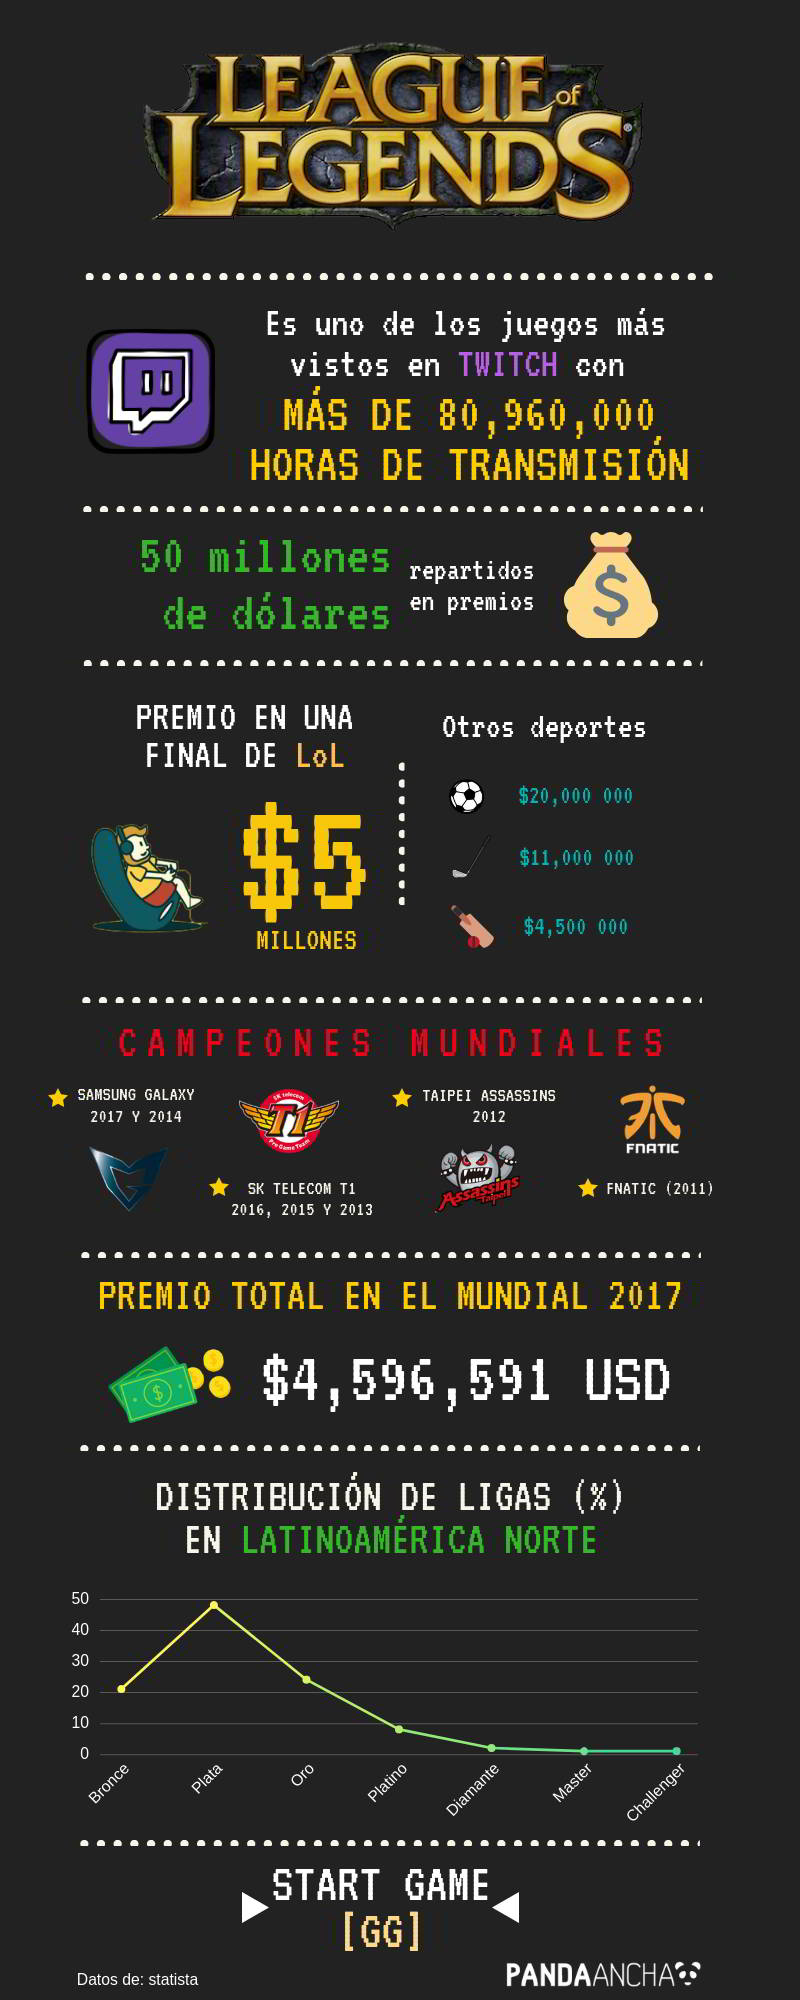 Datos curiosos de League of Legends